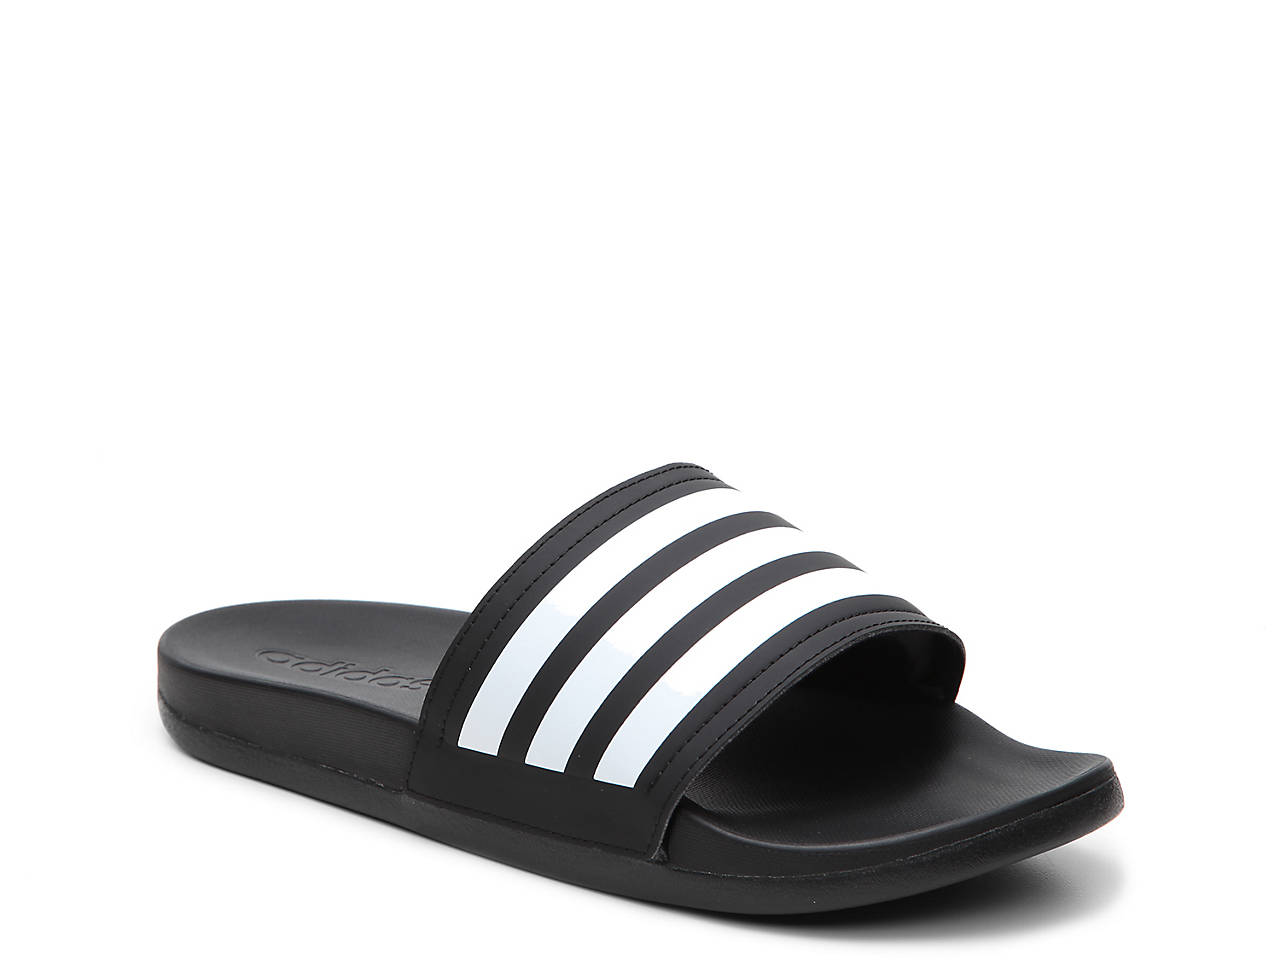 adidas Adilette Cloudfoam Ultra Stripes Slide Sandal - Women s ... bd60d5f1e